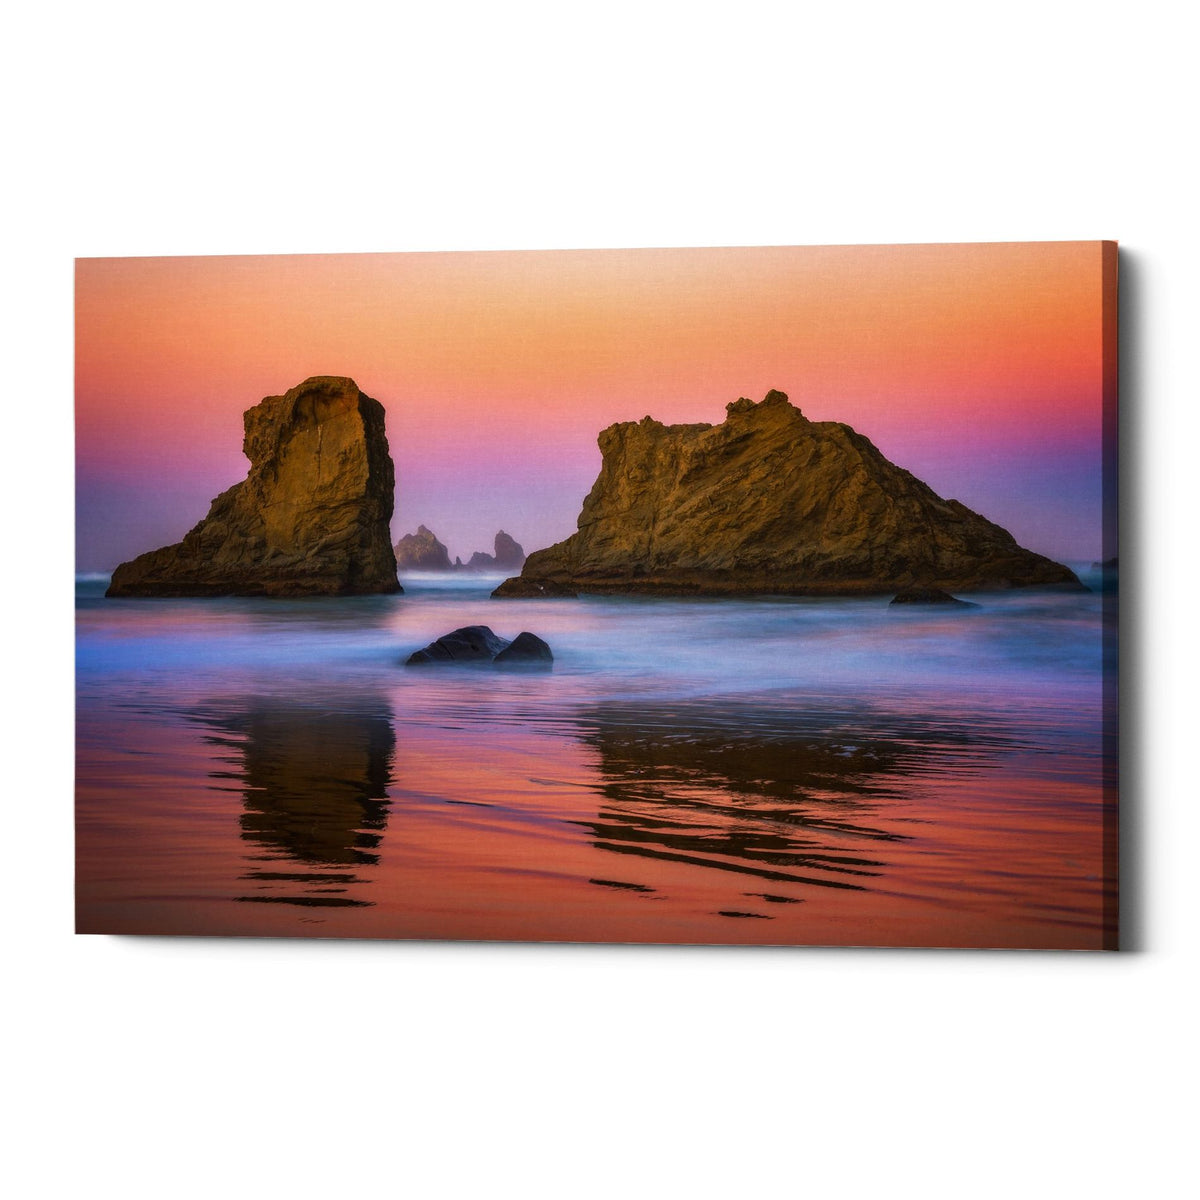 "Epic Graffiti ""Oregon's New Day"" by Darren White, Giclee Canvas Wall Art"